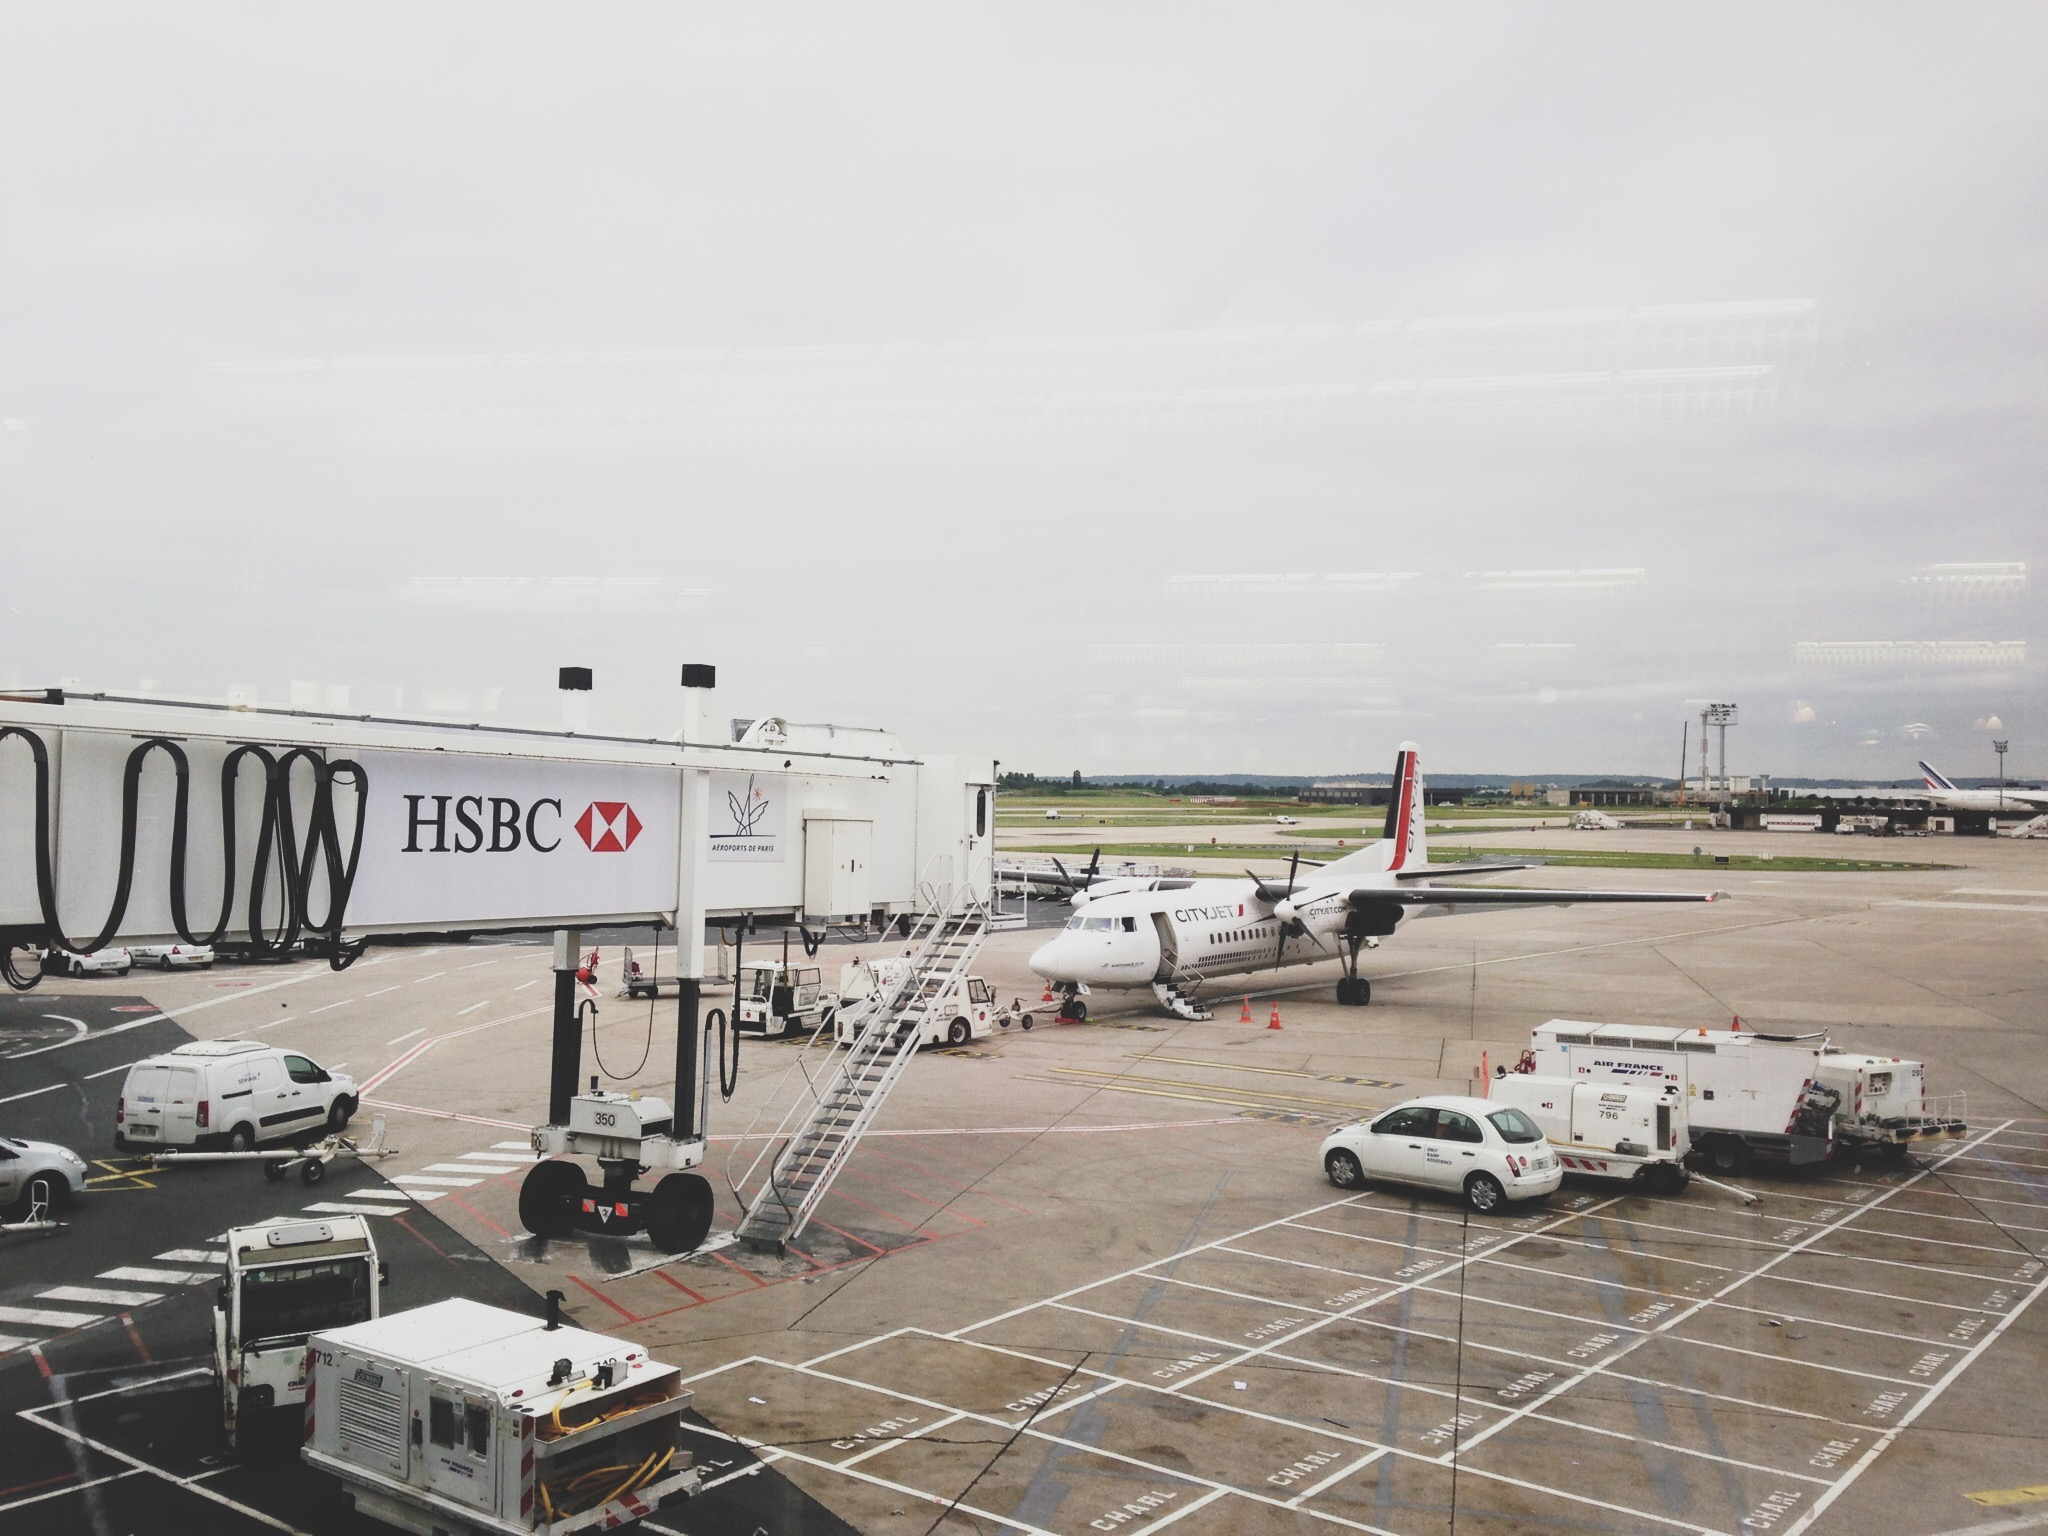 City-jet-airport-aeroport-orly-londres.jpg